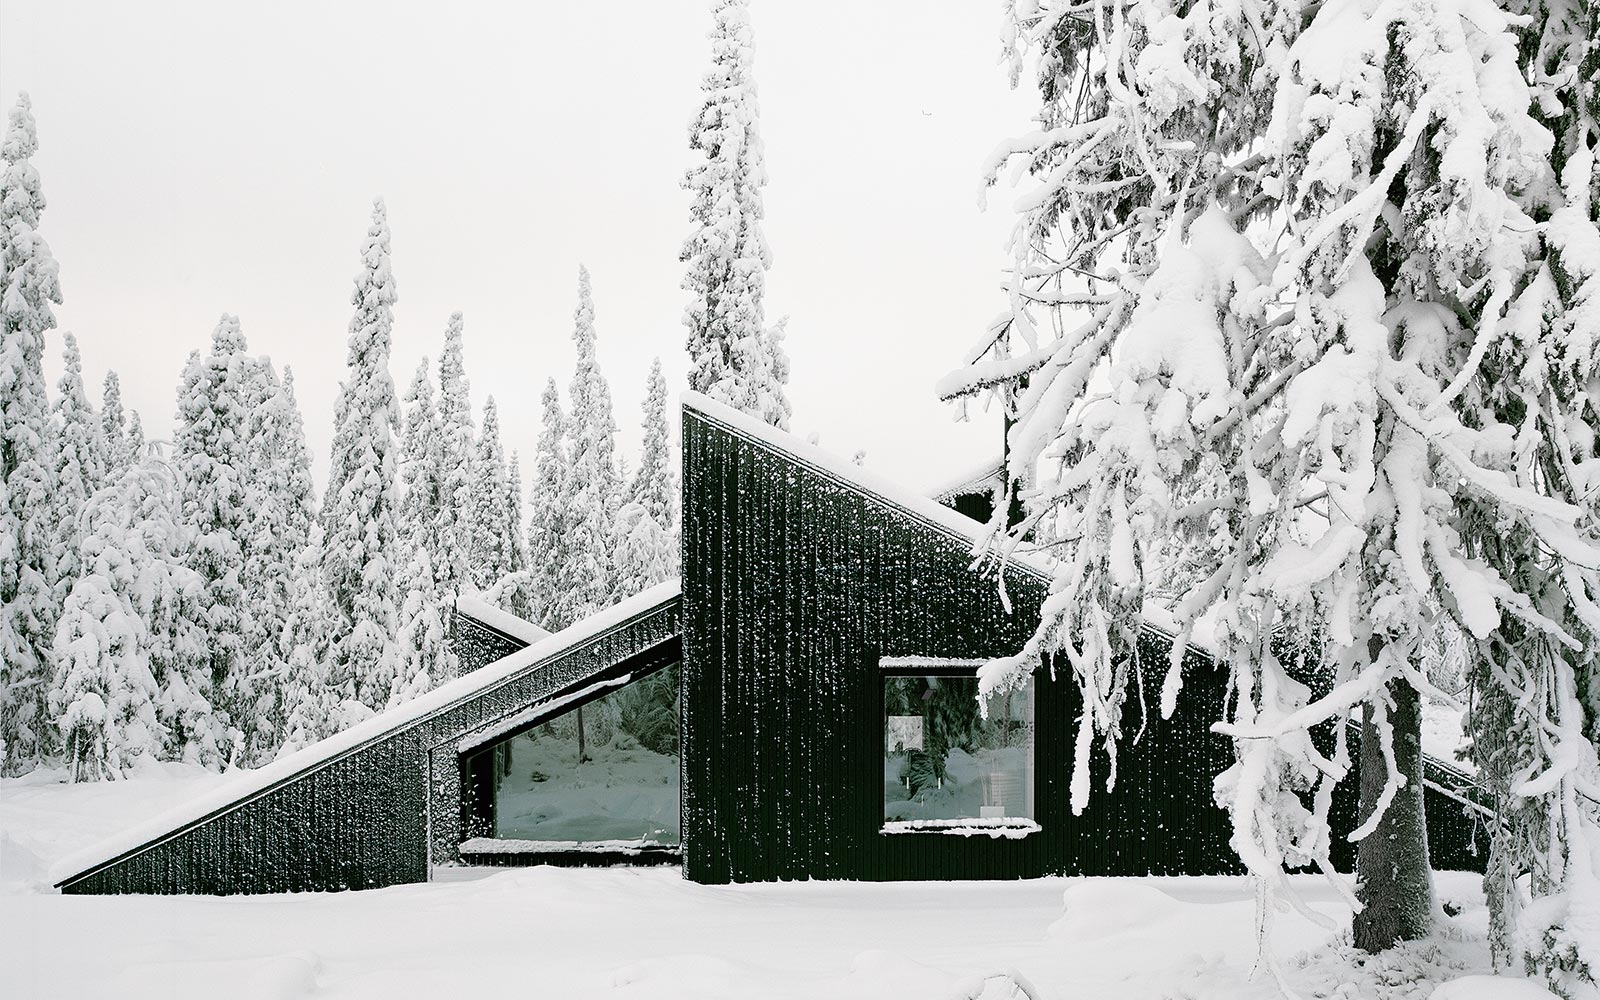 This Hidden Cabin in Norway Looks Like It Was Buried in an Avalanche